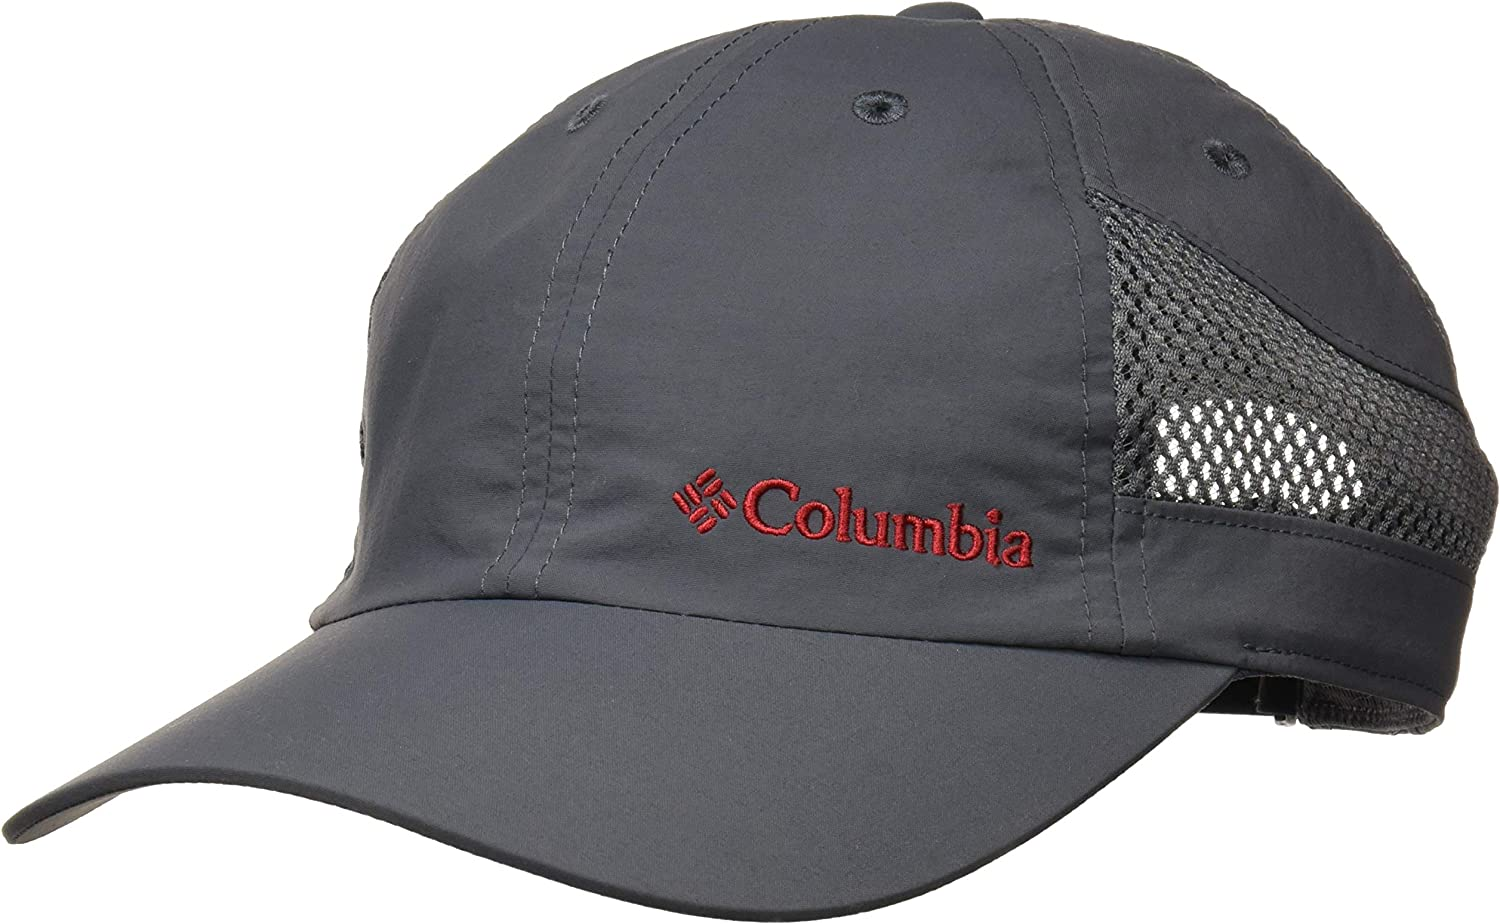 Columbia 1539331 Tech Shade Hat Gorra unisex, nailon: Amazon.es ...